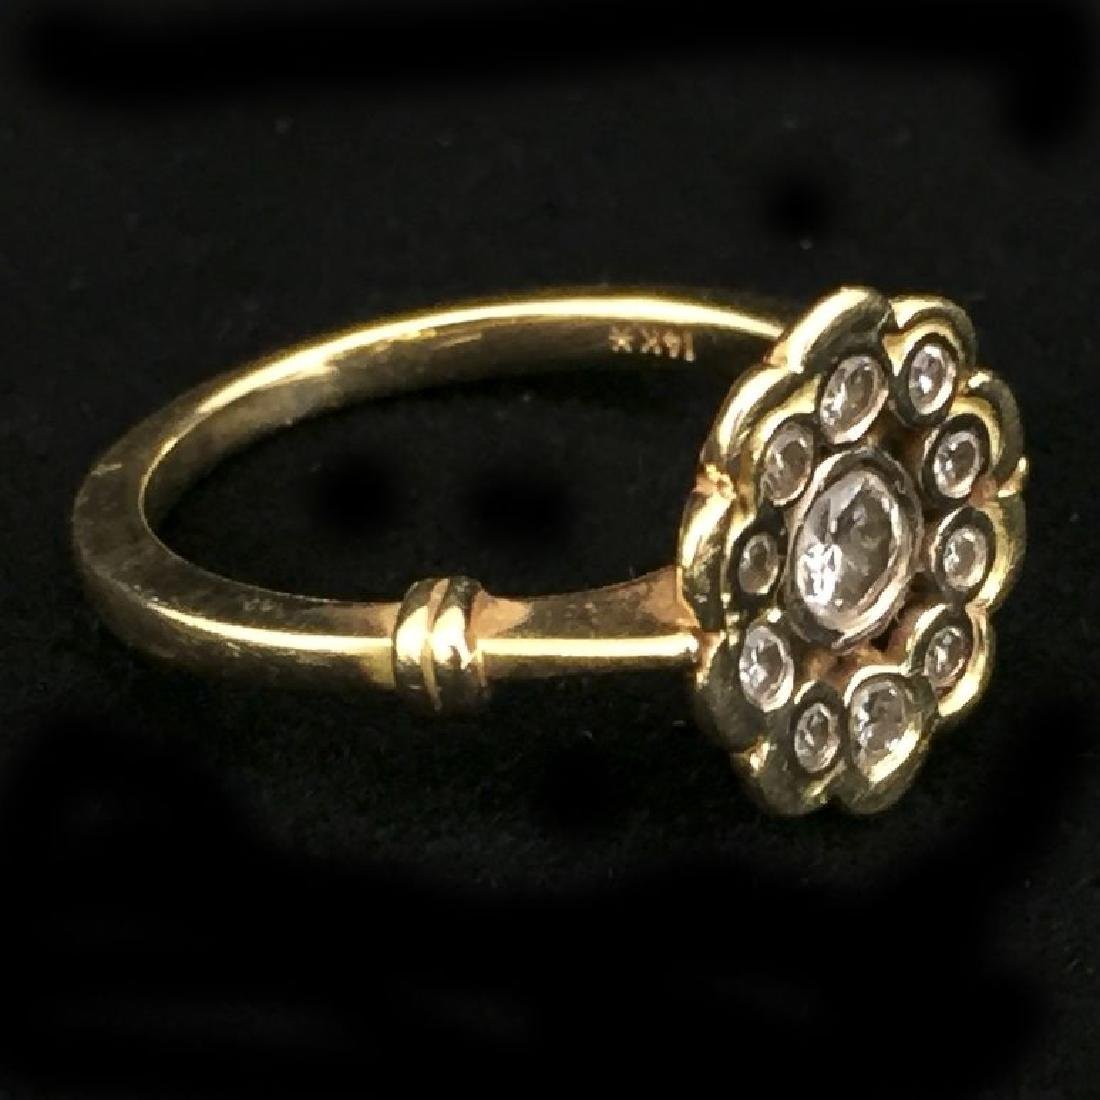 14K Gold Ring With 11 Diamonds - 2